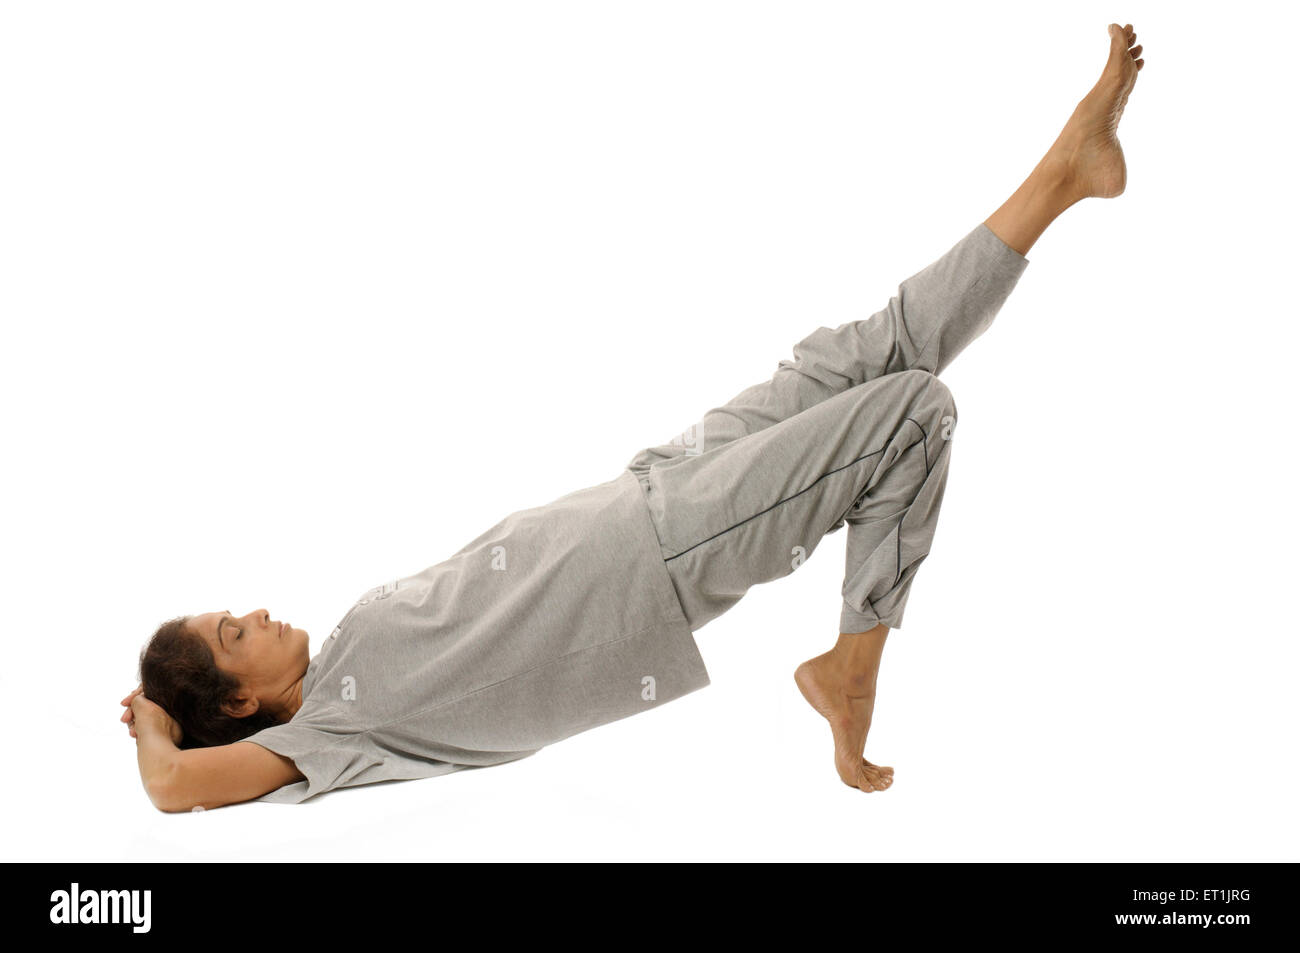 Lady doing yogic exercises ardha chakra asana  MR#190 5 September 2009 - Stock Image